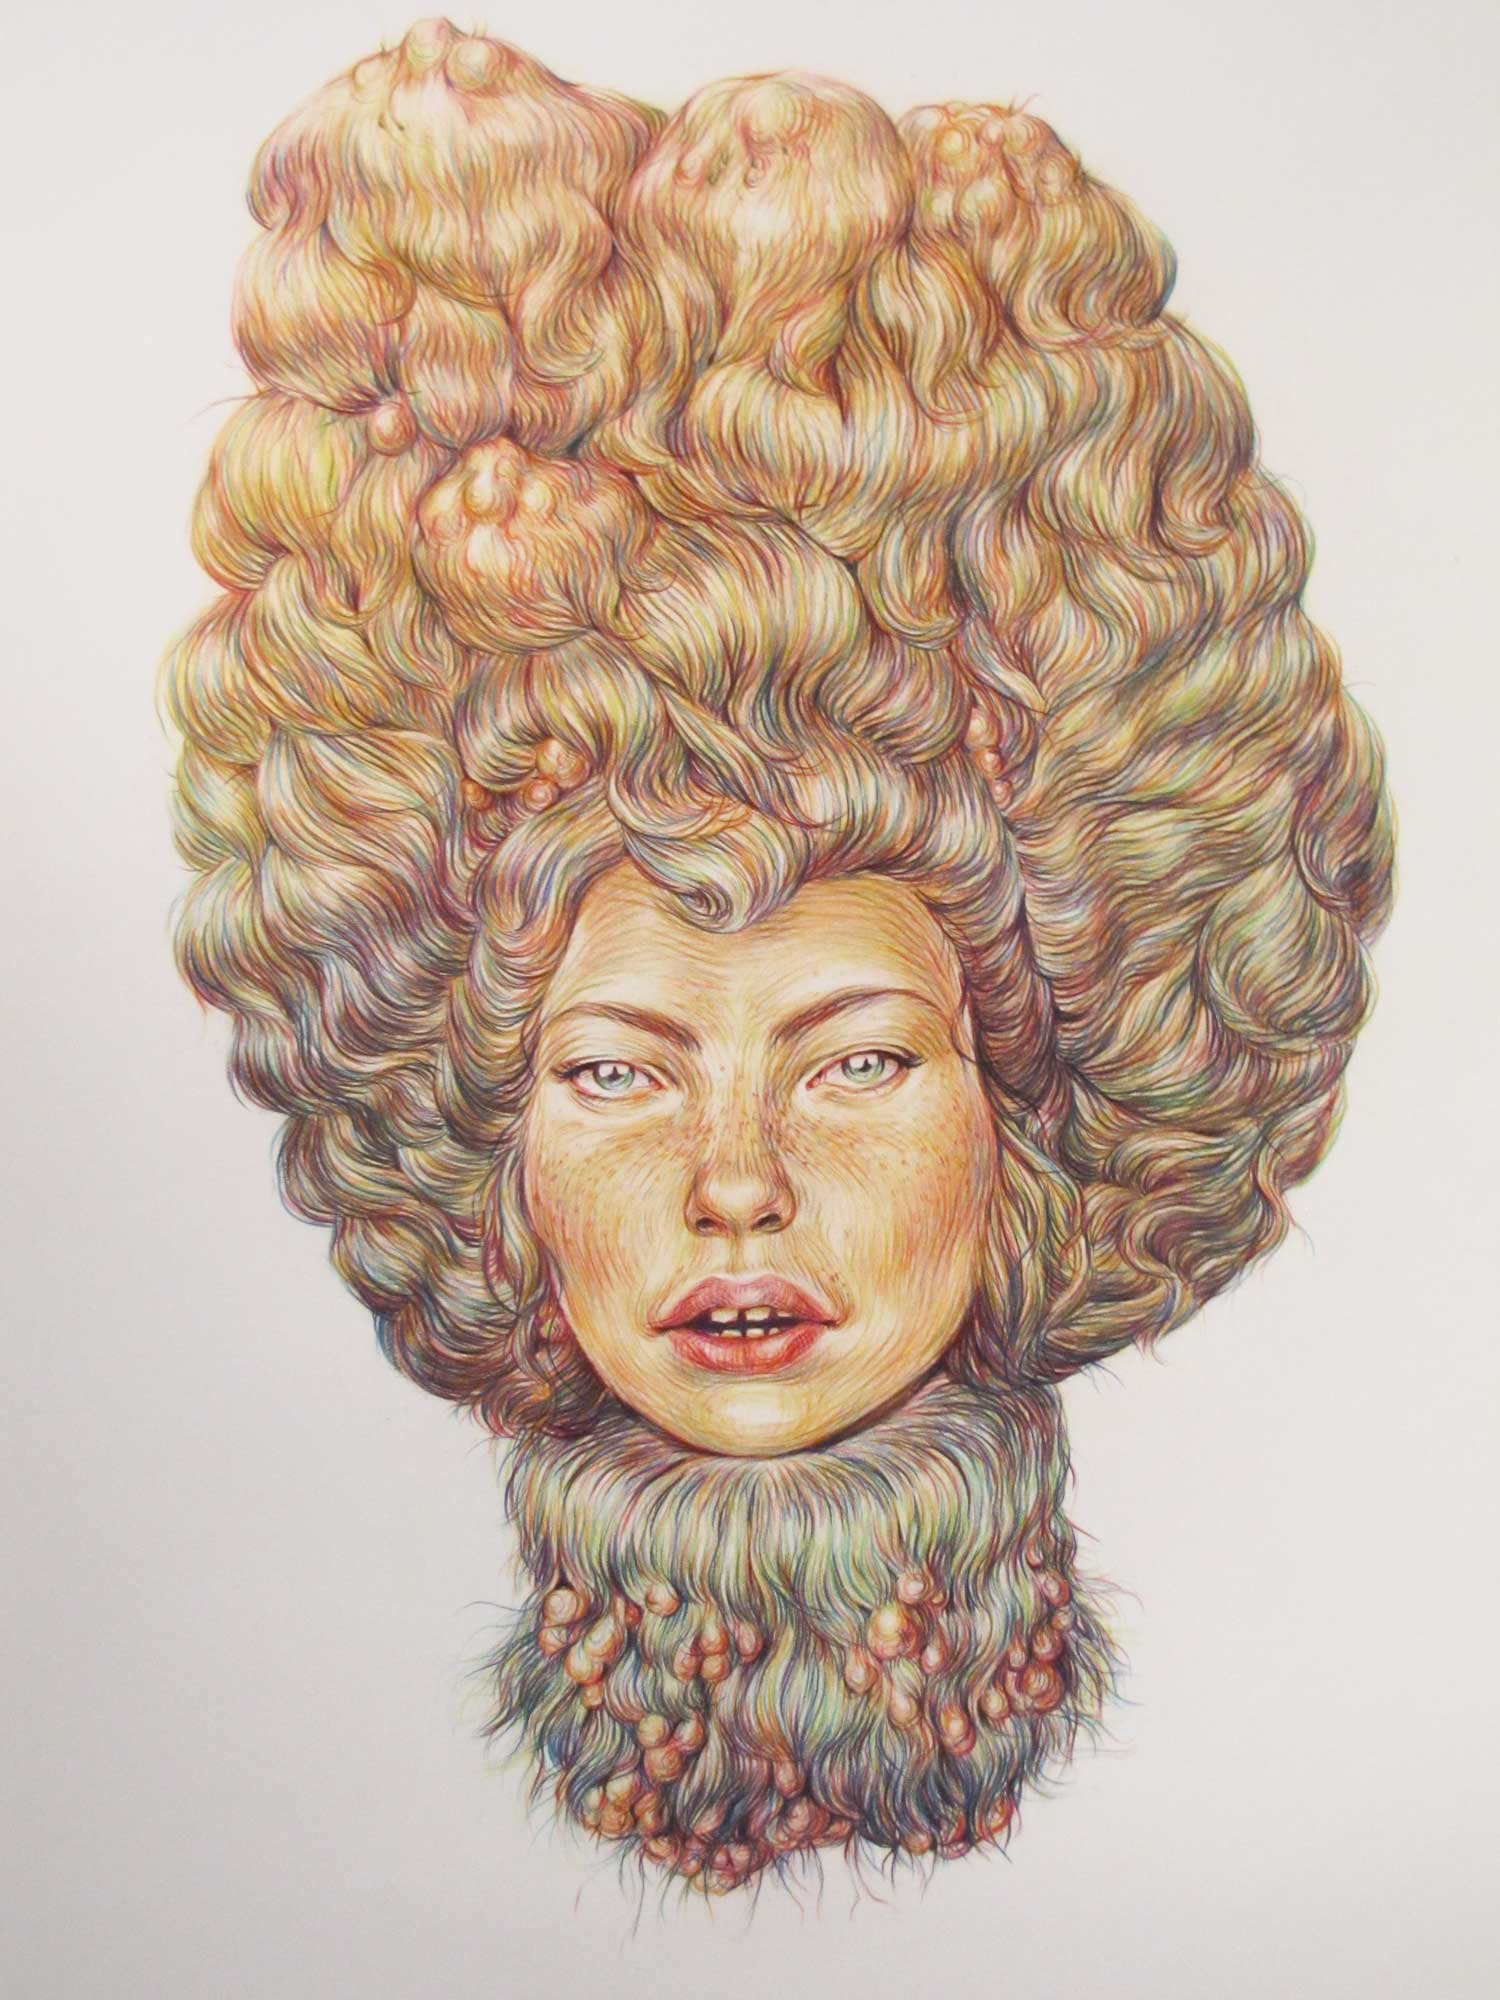 winnie truong moulded hair illustration infected hair